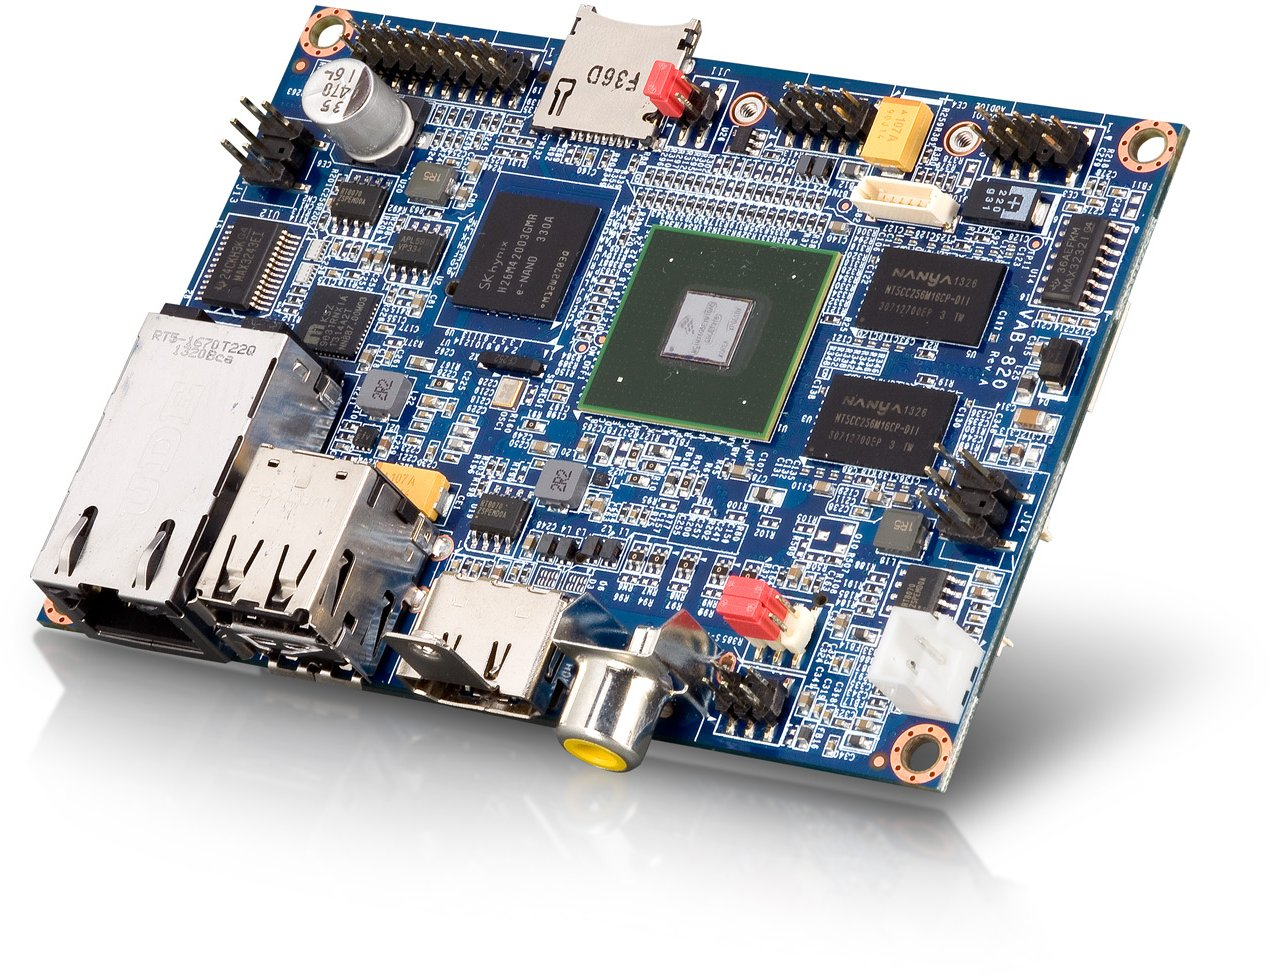 Via Unveils Vab 820 Pico Itx Board Powered By Freescale Imx6 Quad Exynos 5 Octa Block Diagram Sbc Click To Enlarge